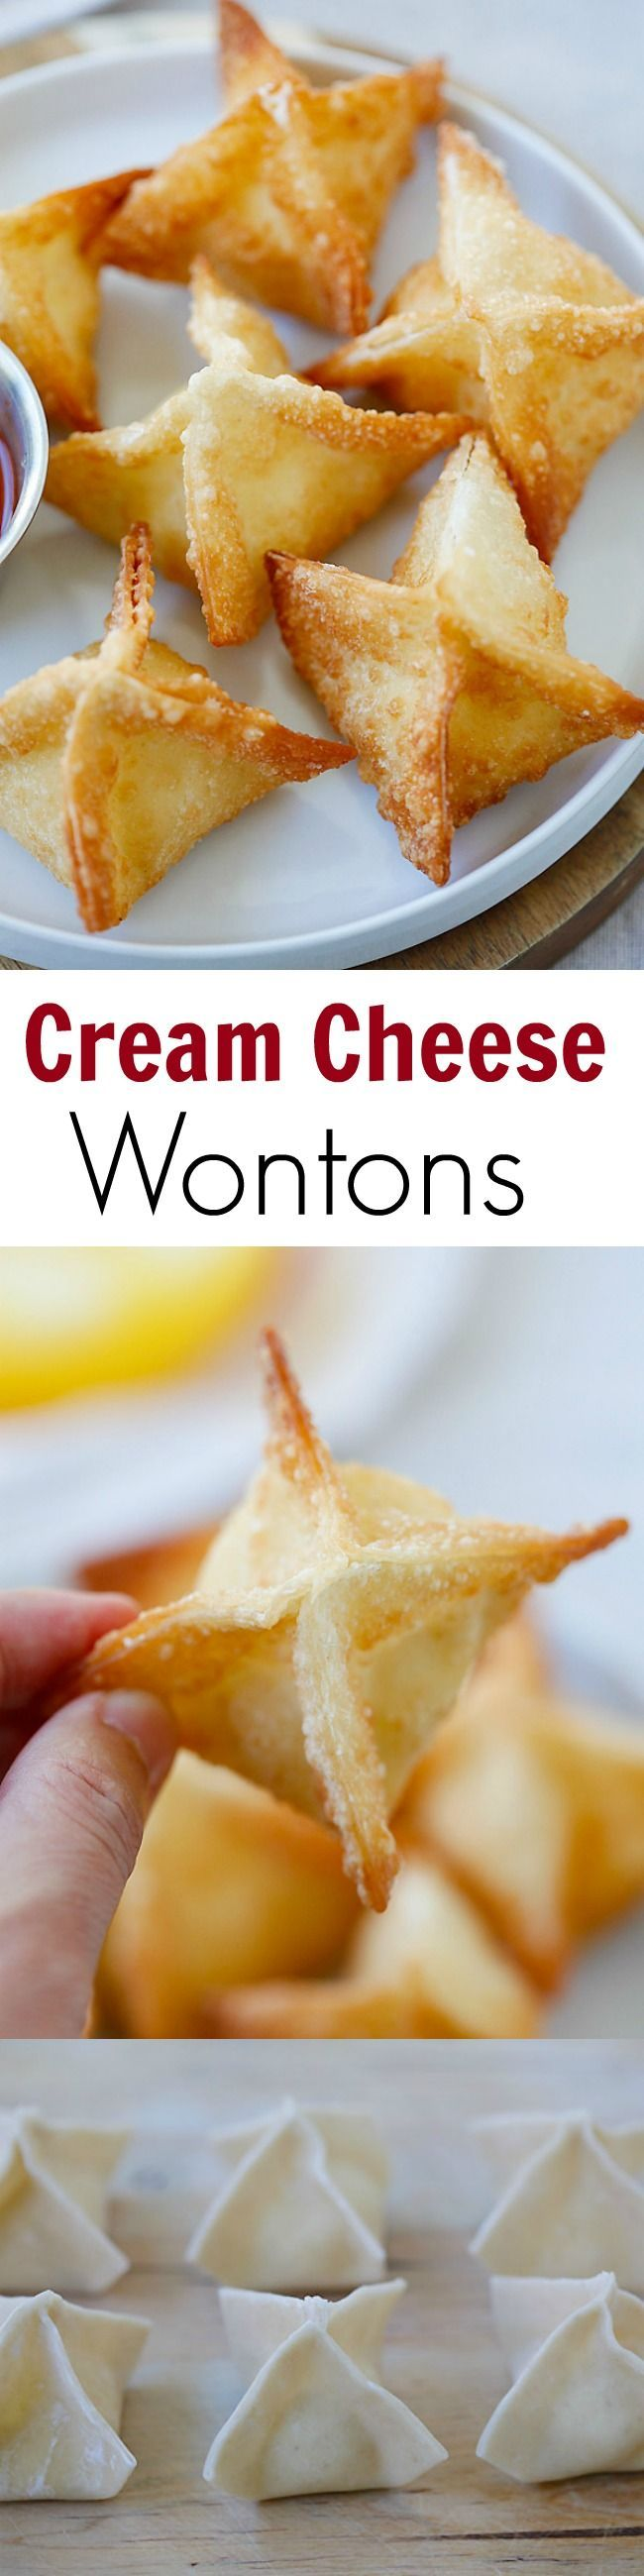 #chinesenewyear The best, easiest & super crispy crab rangoon or cream cheese wonton recipe EVER. Quick, fool-proof, a zillion times better than Chinese takeout | rasamalaysia.com